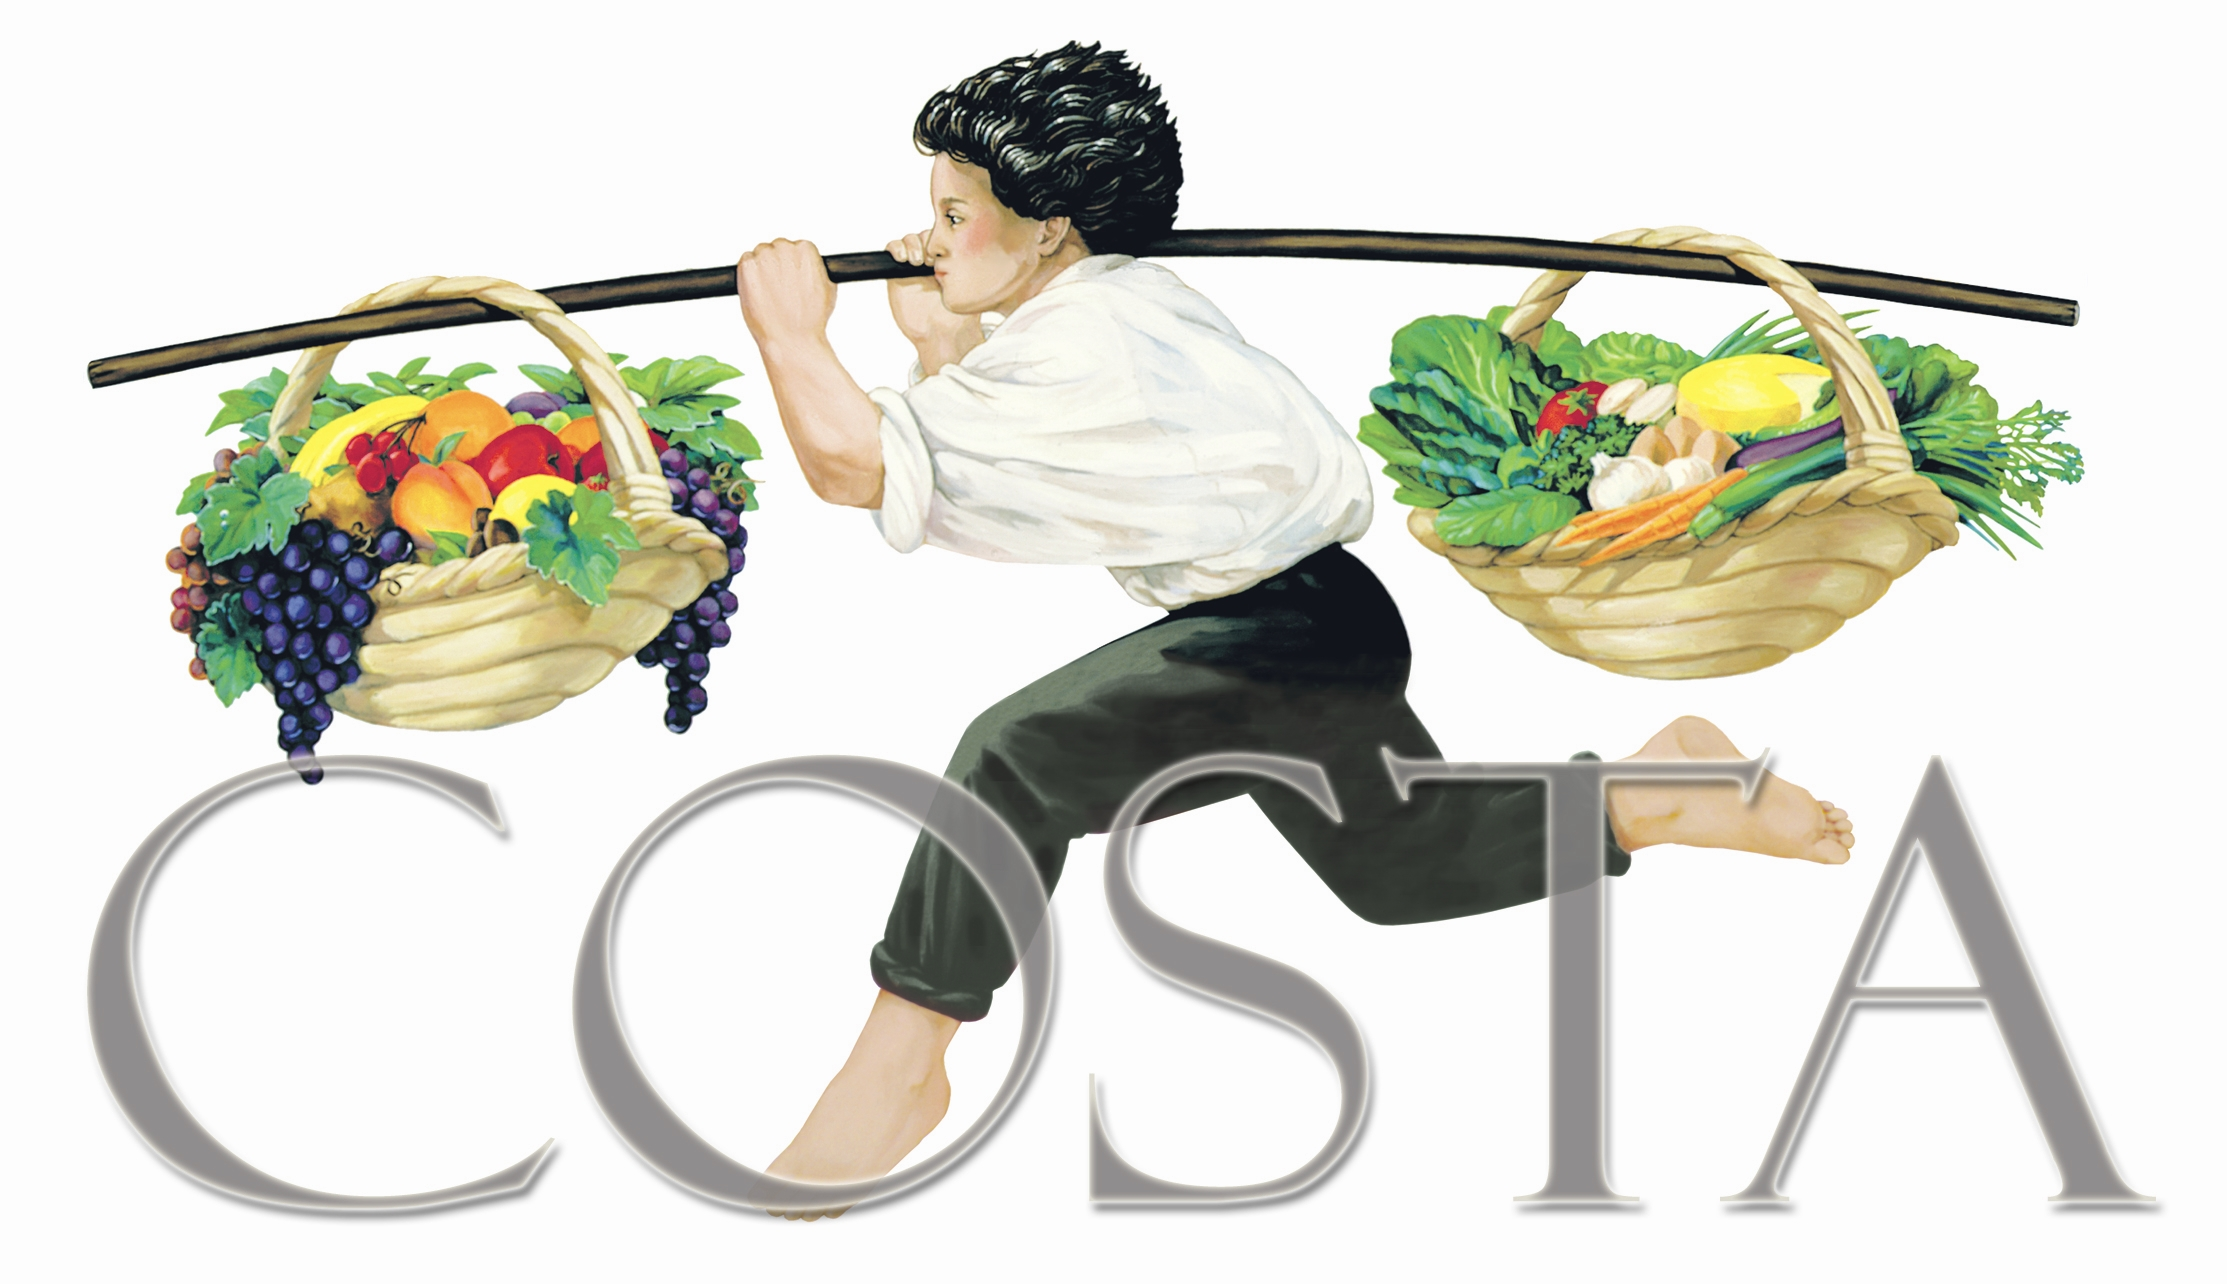 Costa_fruit_produce_logo